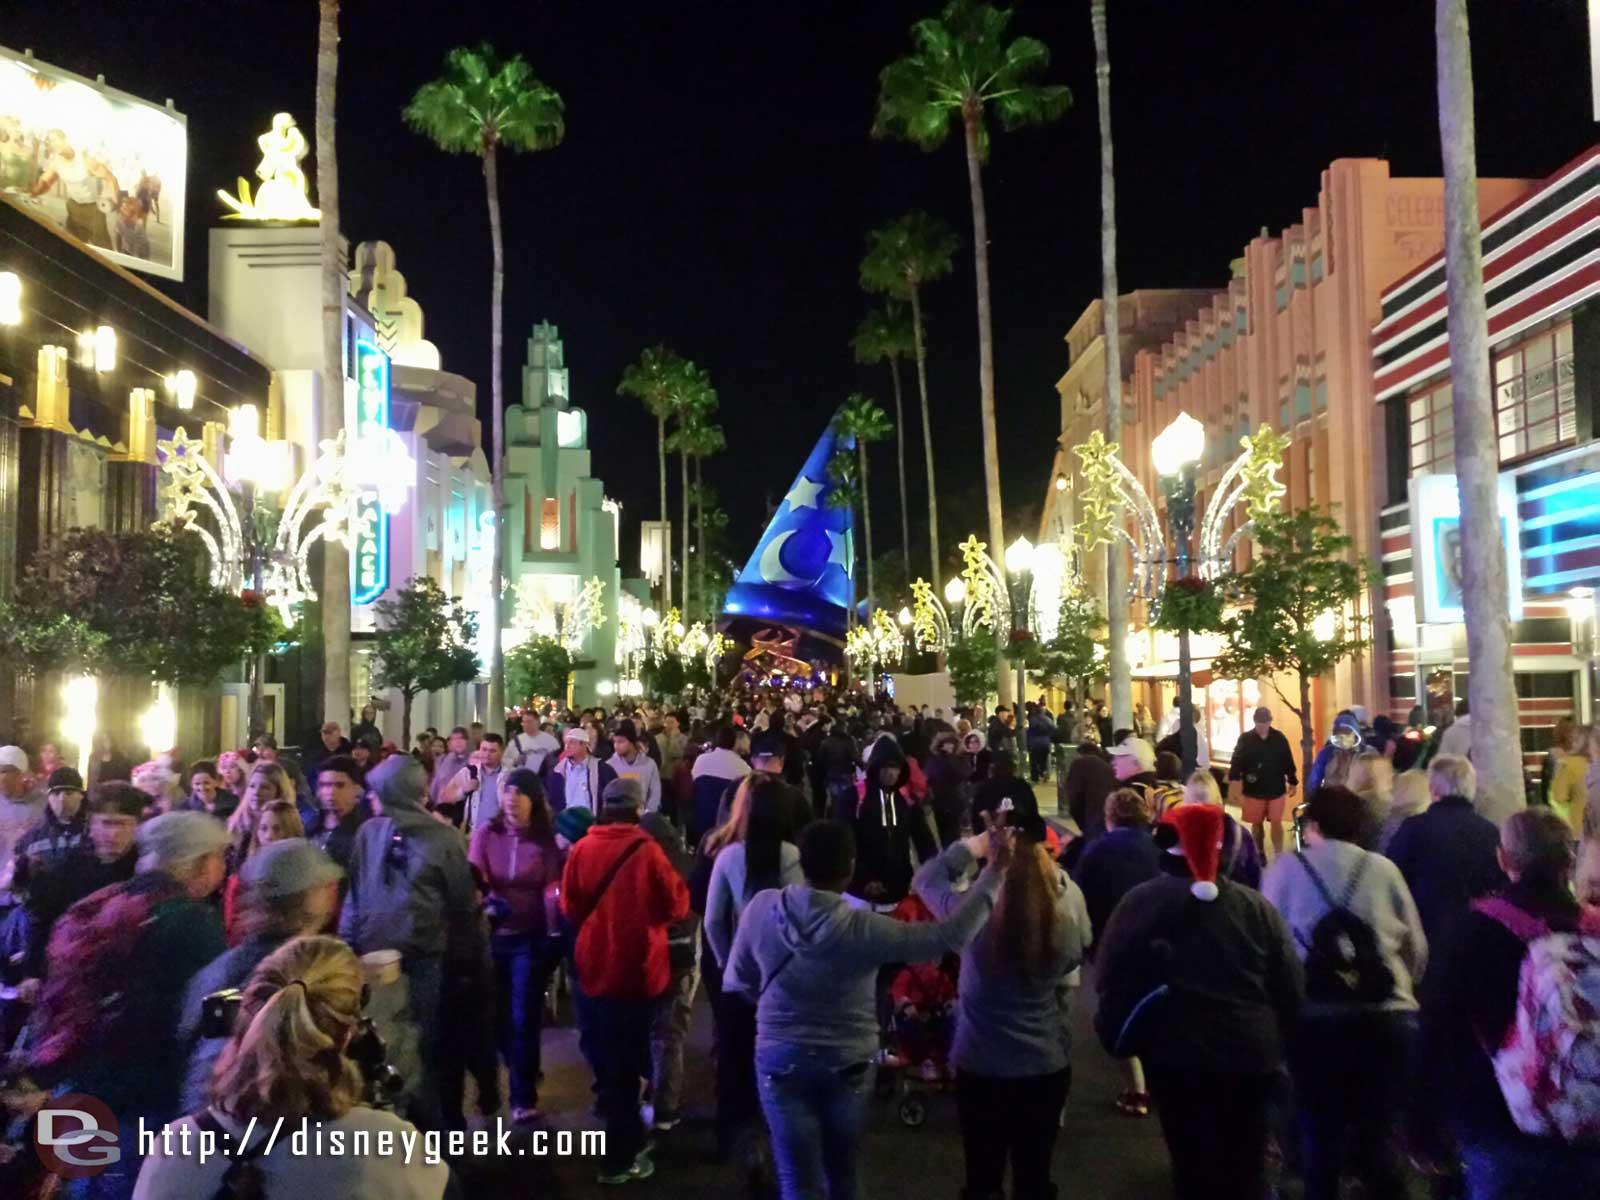 Hollywood Blvd at the Disney Hollywood Studios #WDW